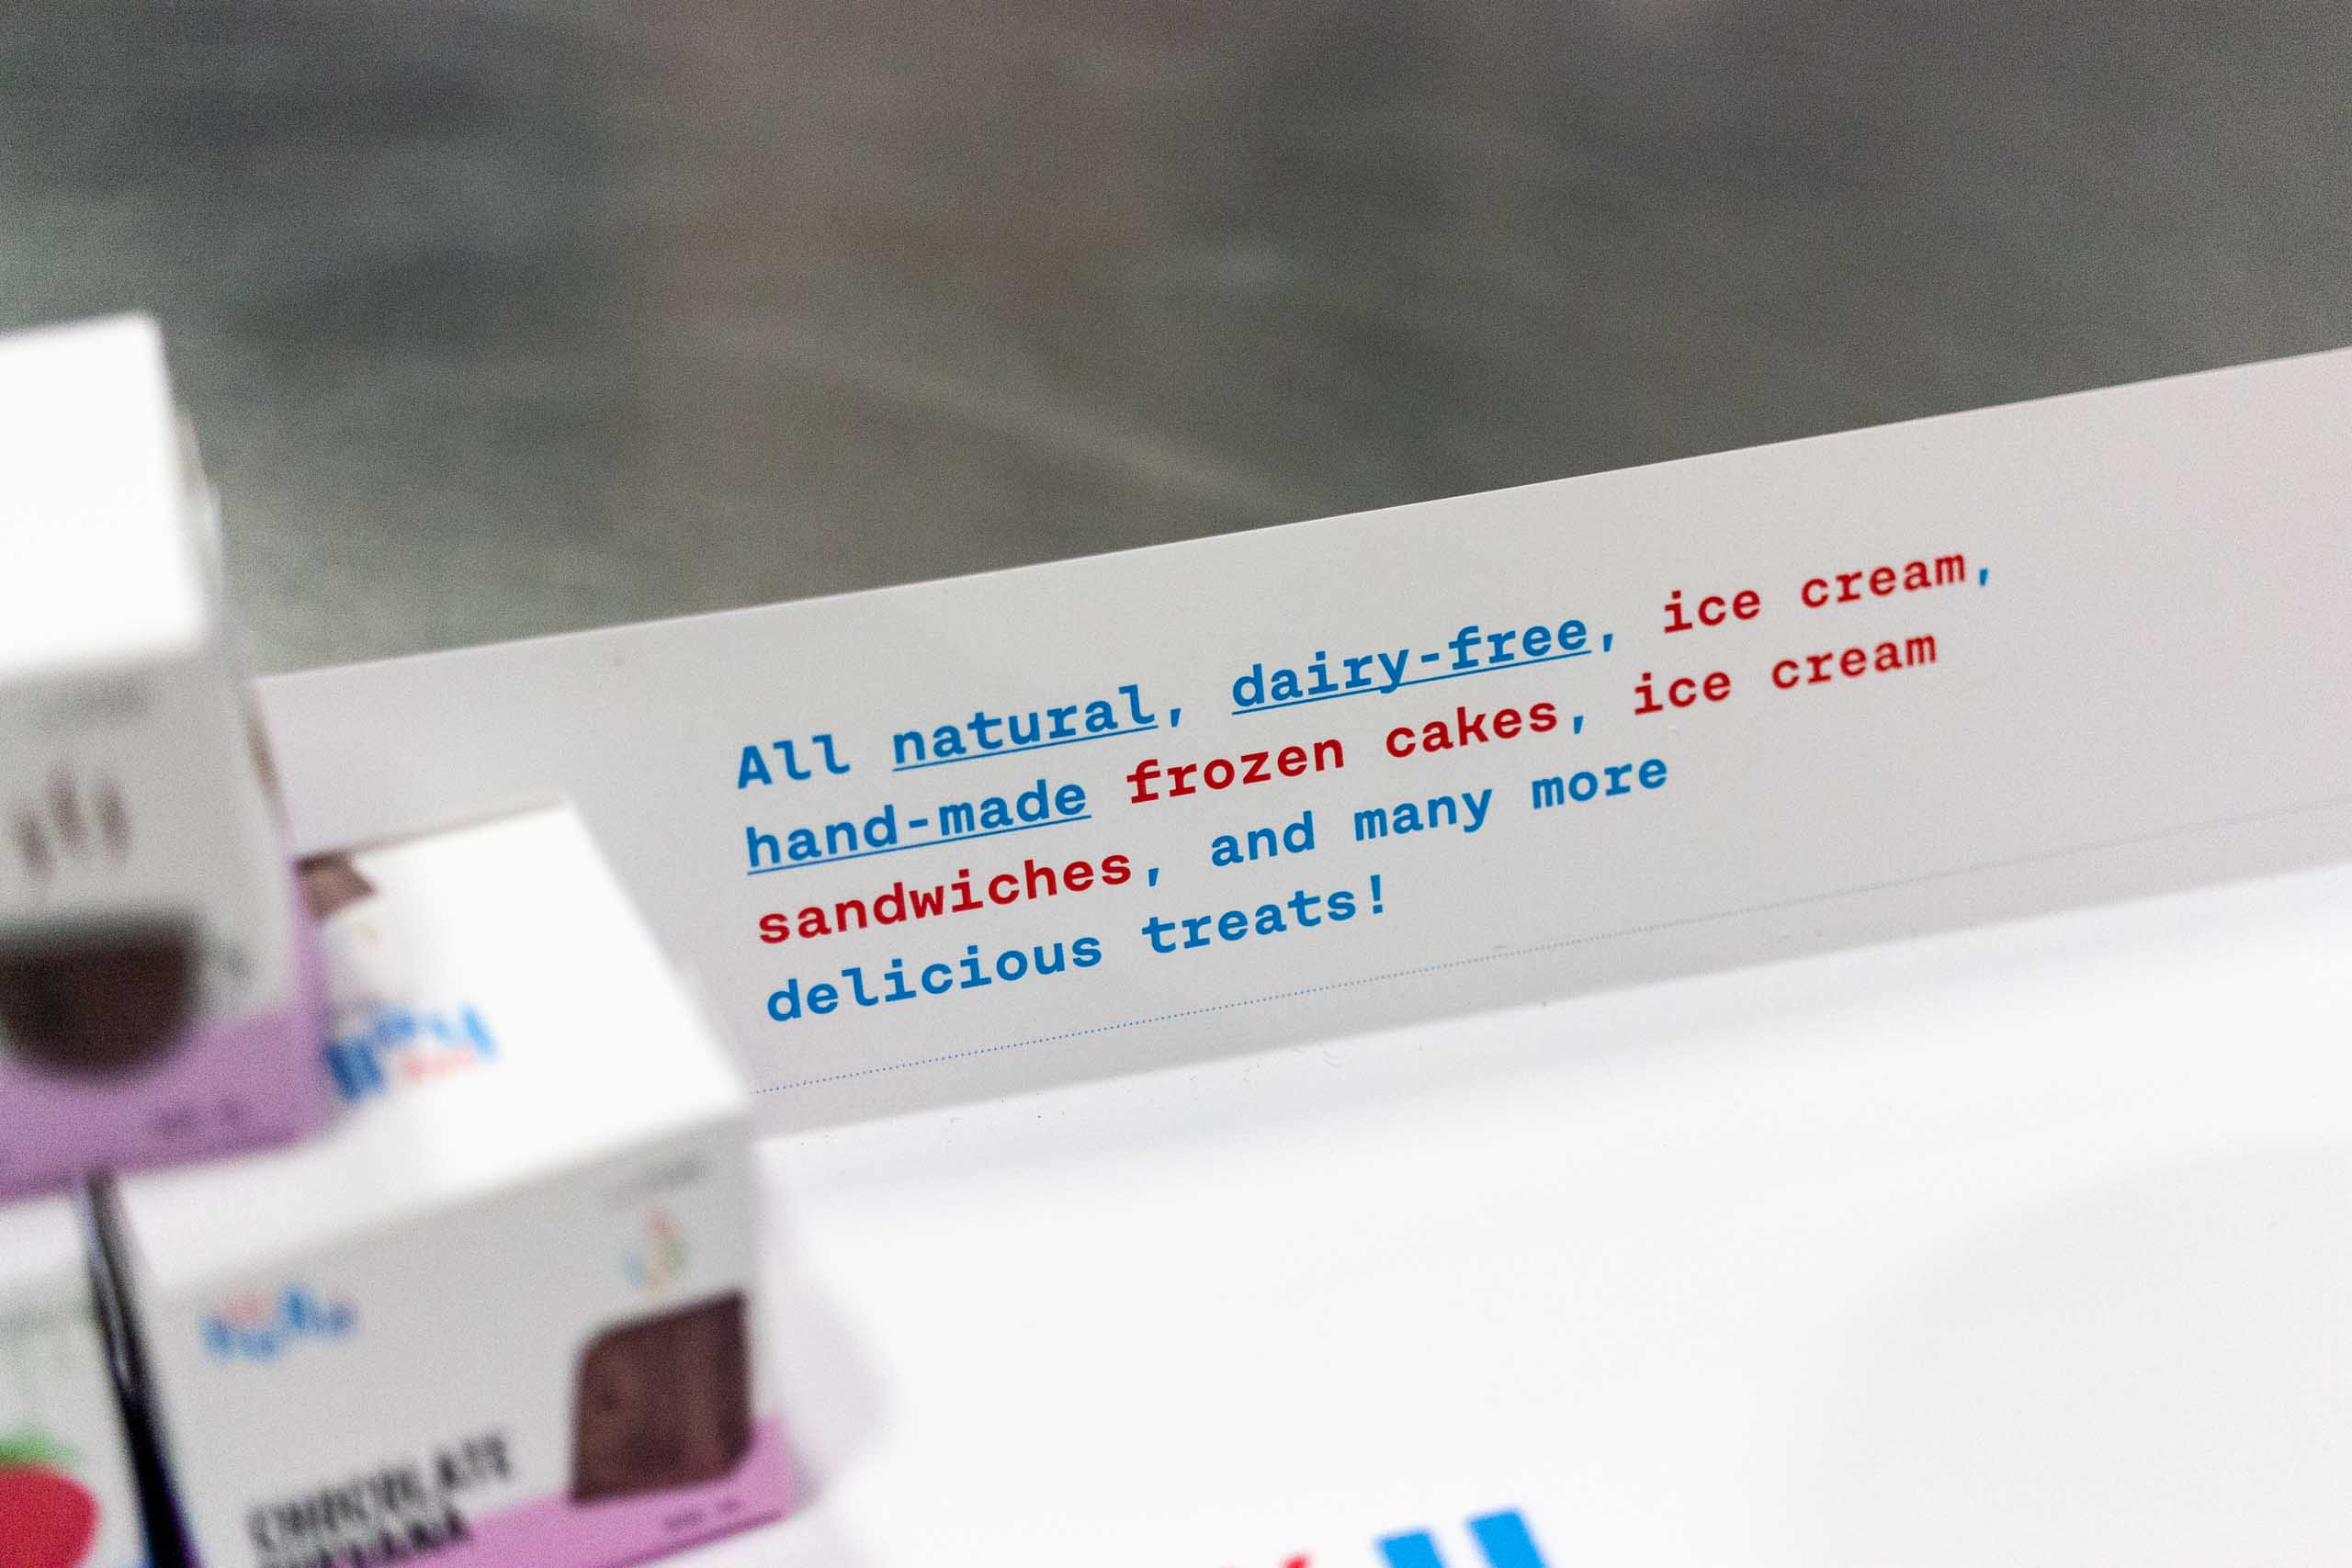 Close up of Say Hello sweets brand manifesto, printed on the tray in vibrant red and blue colors — by Dima Yagnyuk.